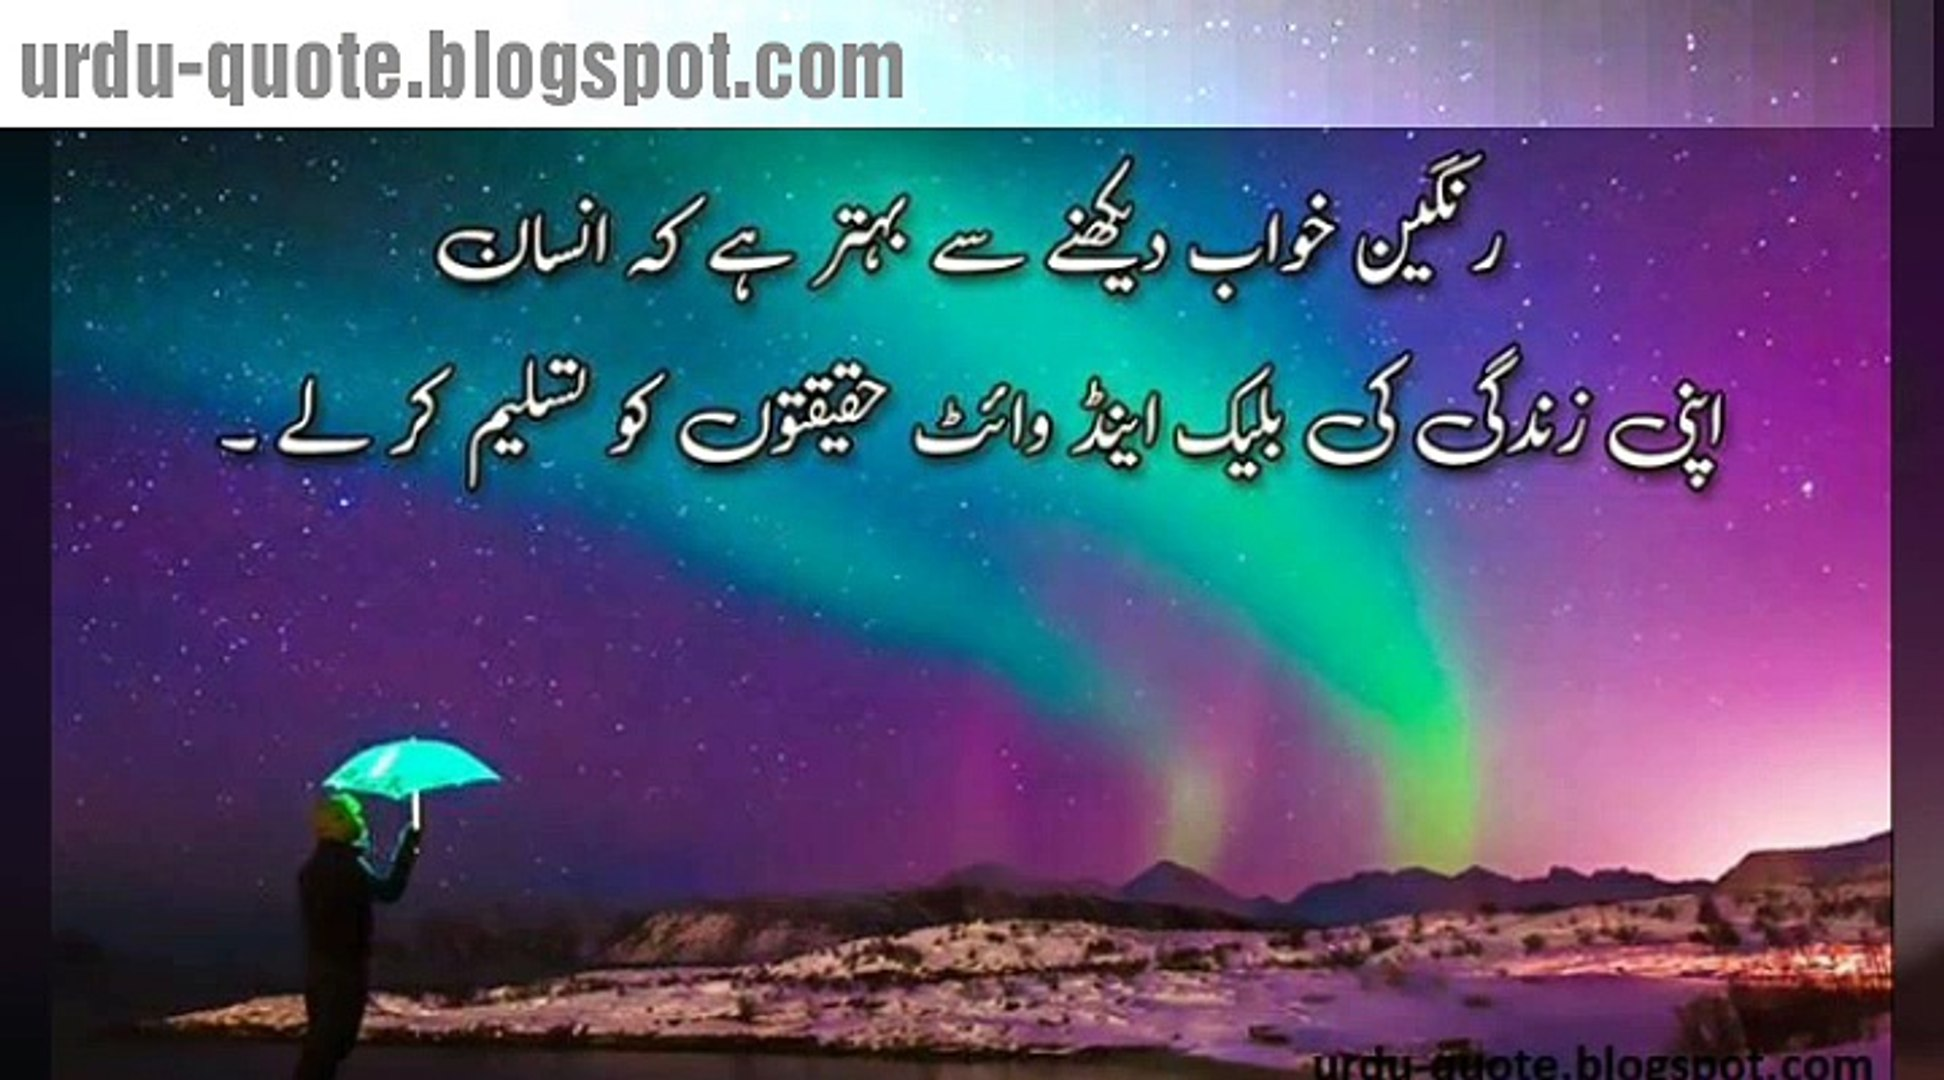 urdu inspirational quotes video dailymotion